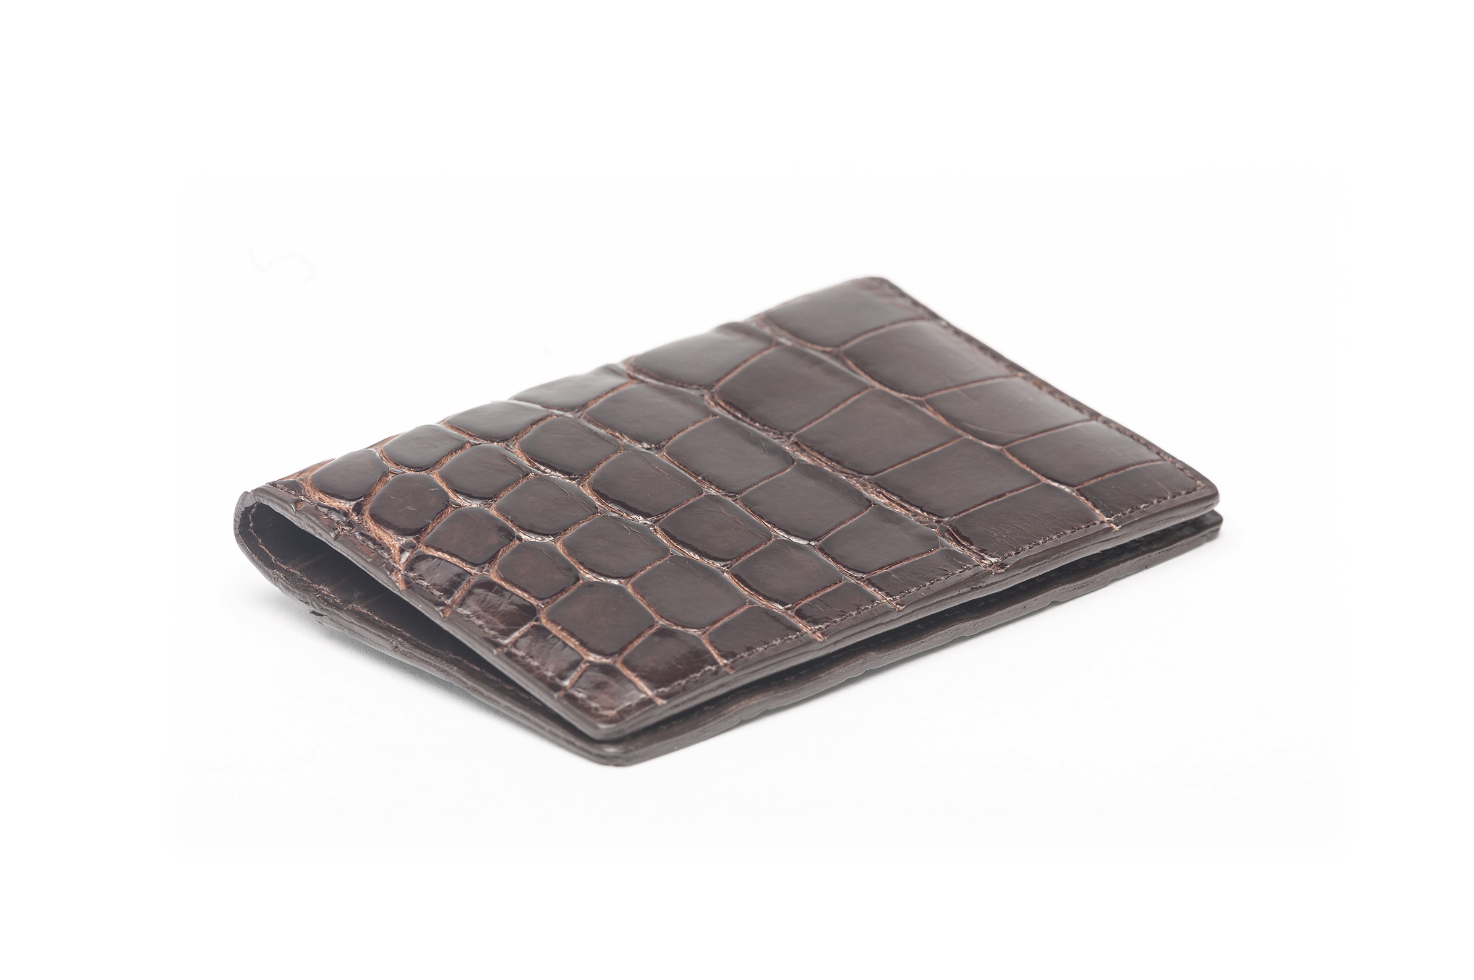 W.KLEINGBERG GLAZED ALLIGATOR CREDIT CARD ID CASE - 4 COLOR OPTIONS